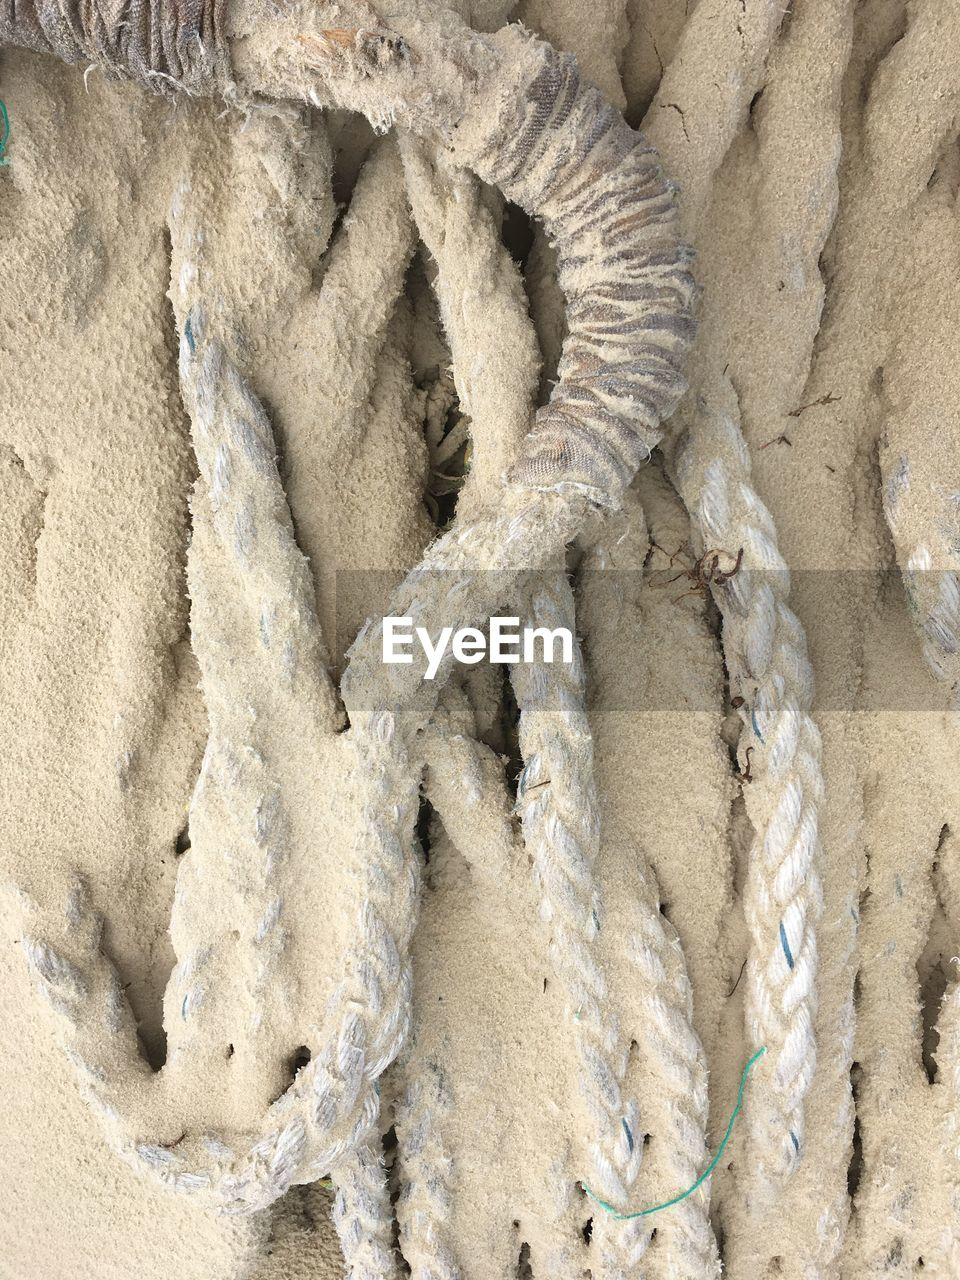 HIGH ANGLE VIEW OF ROPES ON SAND